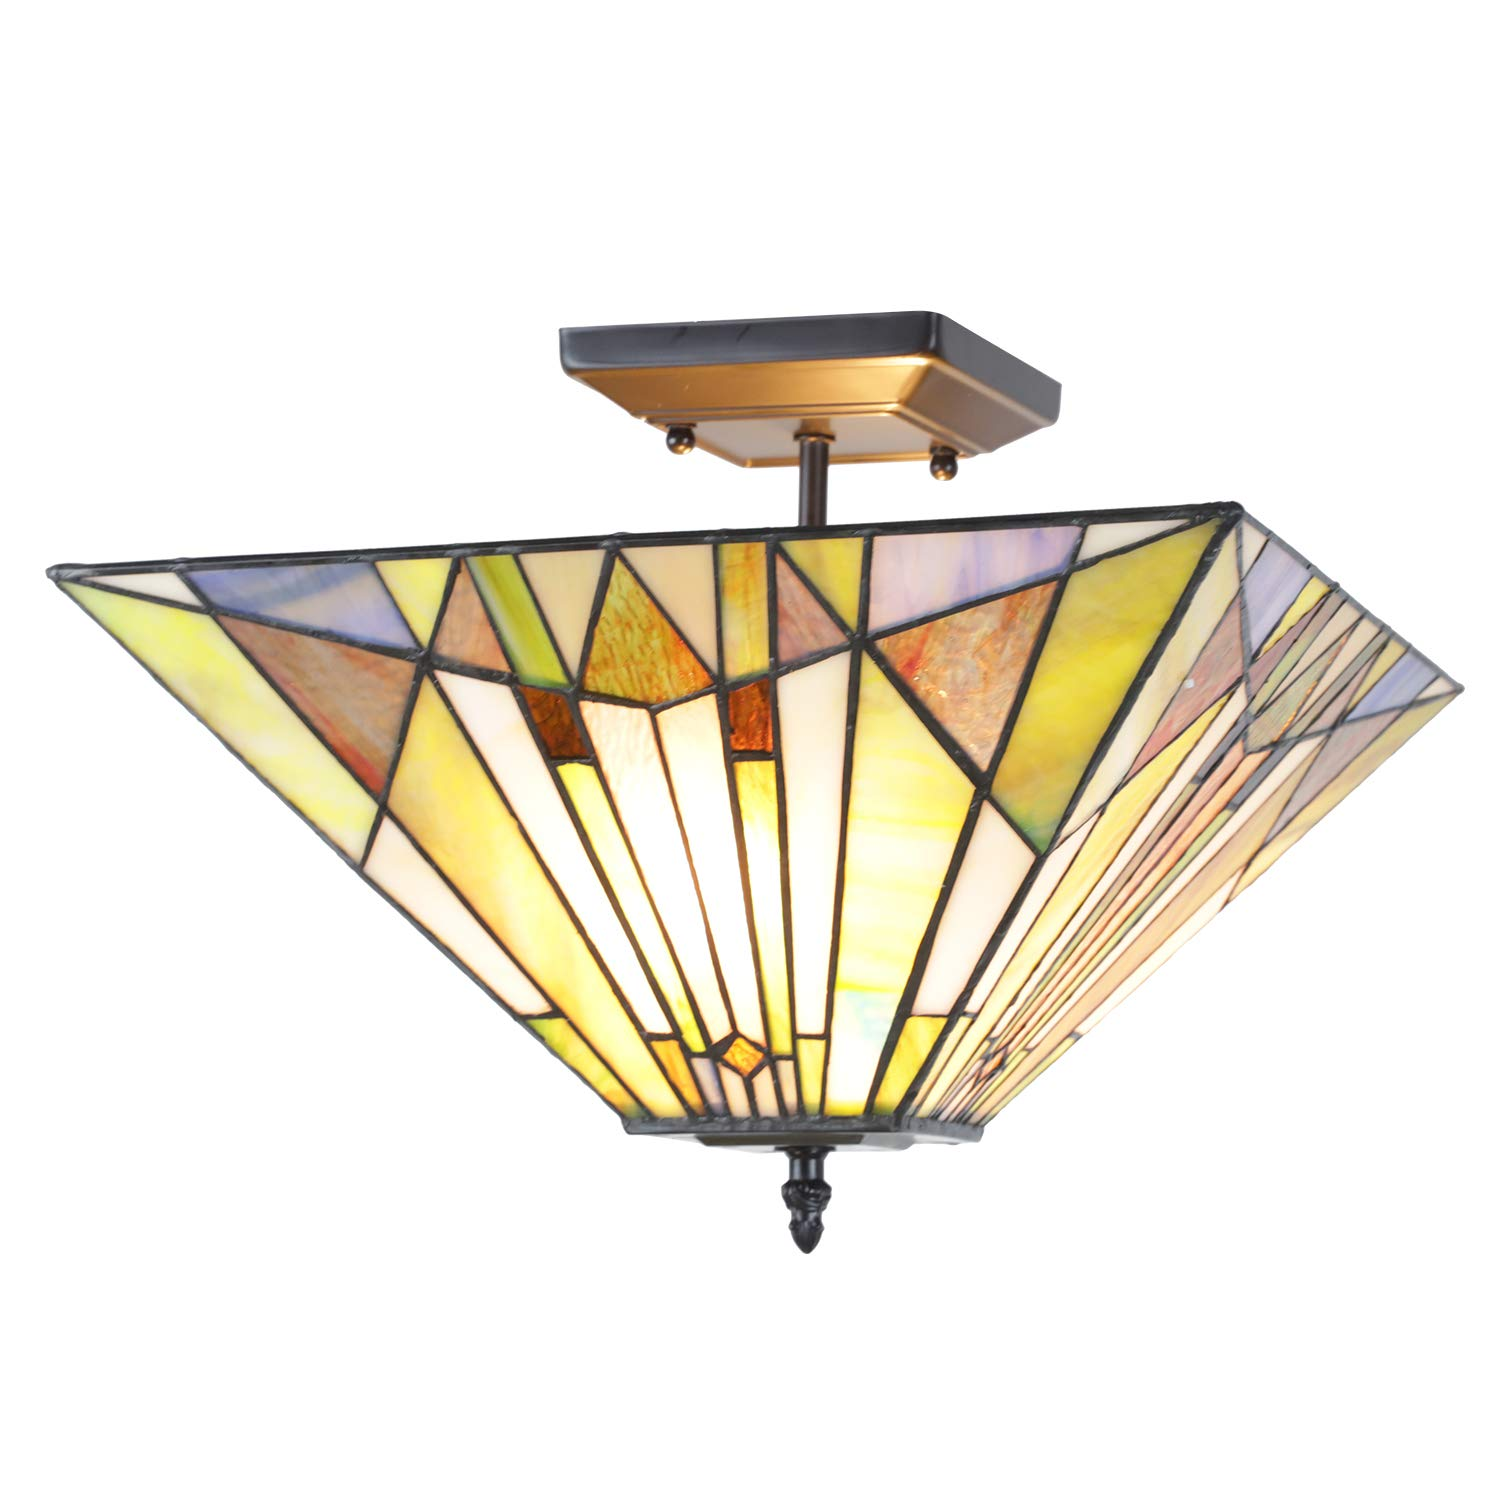 VINLUZ Ceiling Lighting Tiffany Style 2-Light Art Mission Chandeliers with 14-inch Stained Glass Shade Vintage Flush Mount Ceiling Light Fixtures Hanging for Dining Room Living Room Bedroom